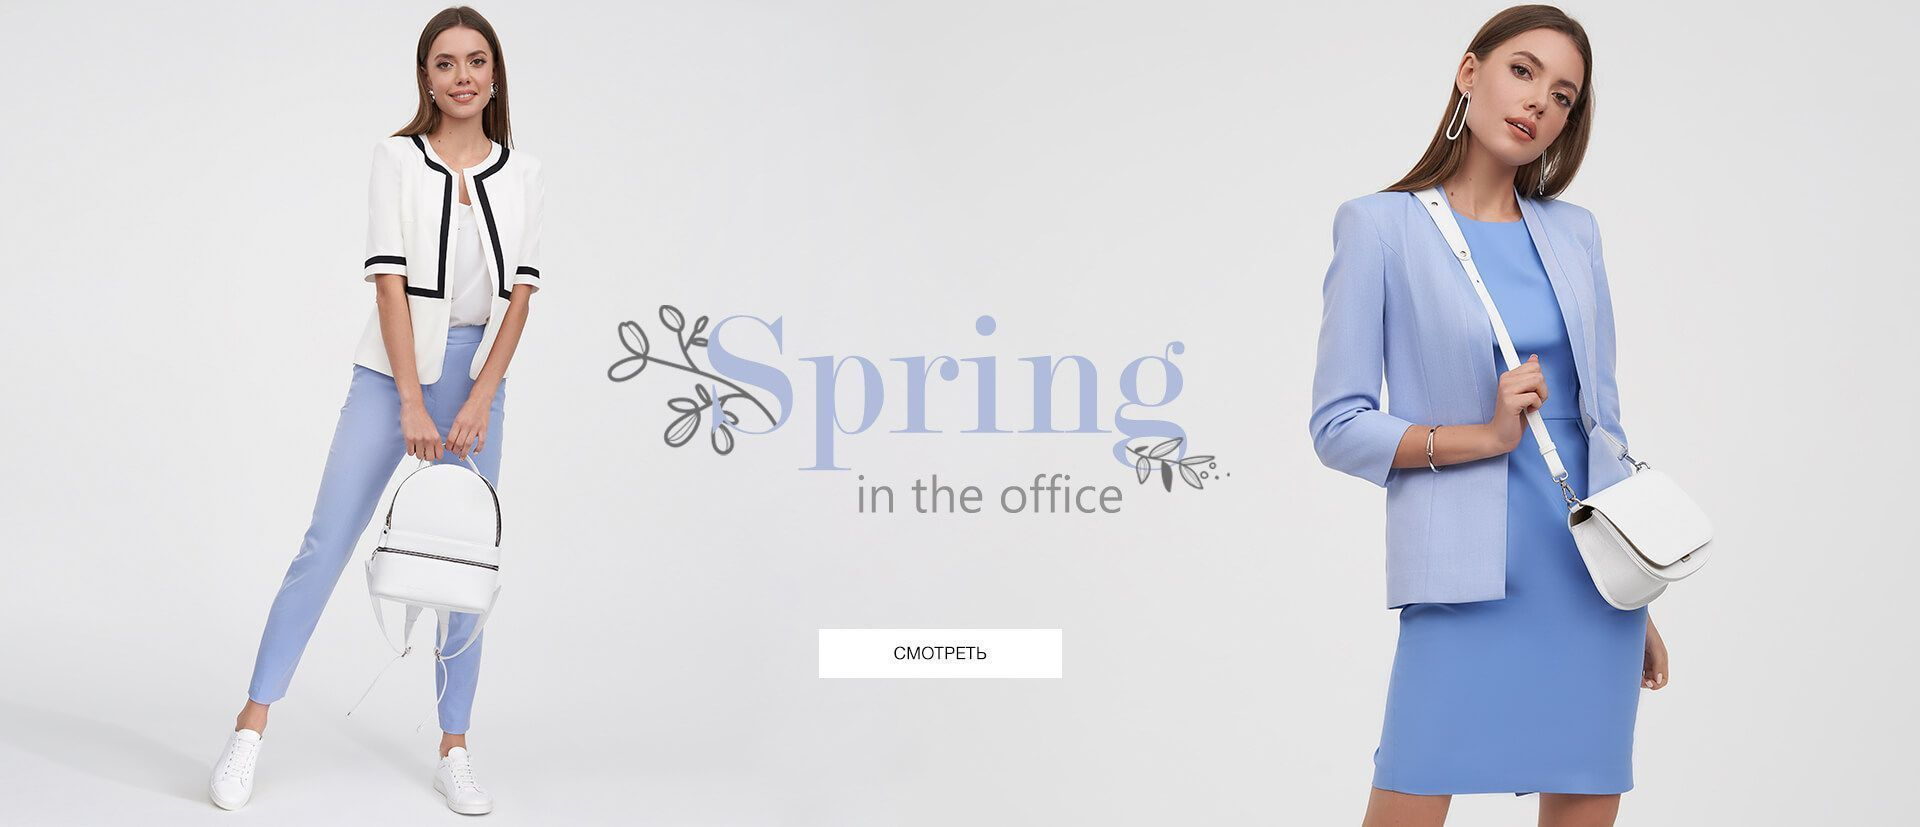 Spring in the office